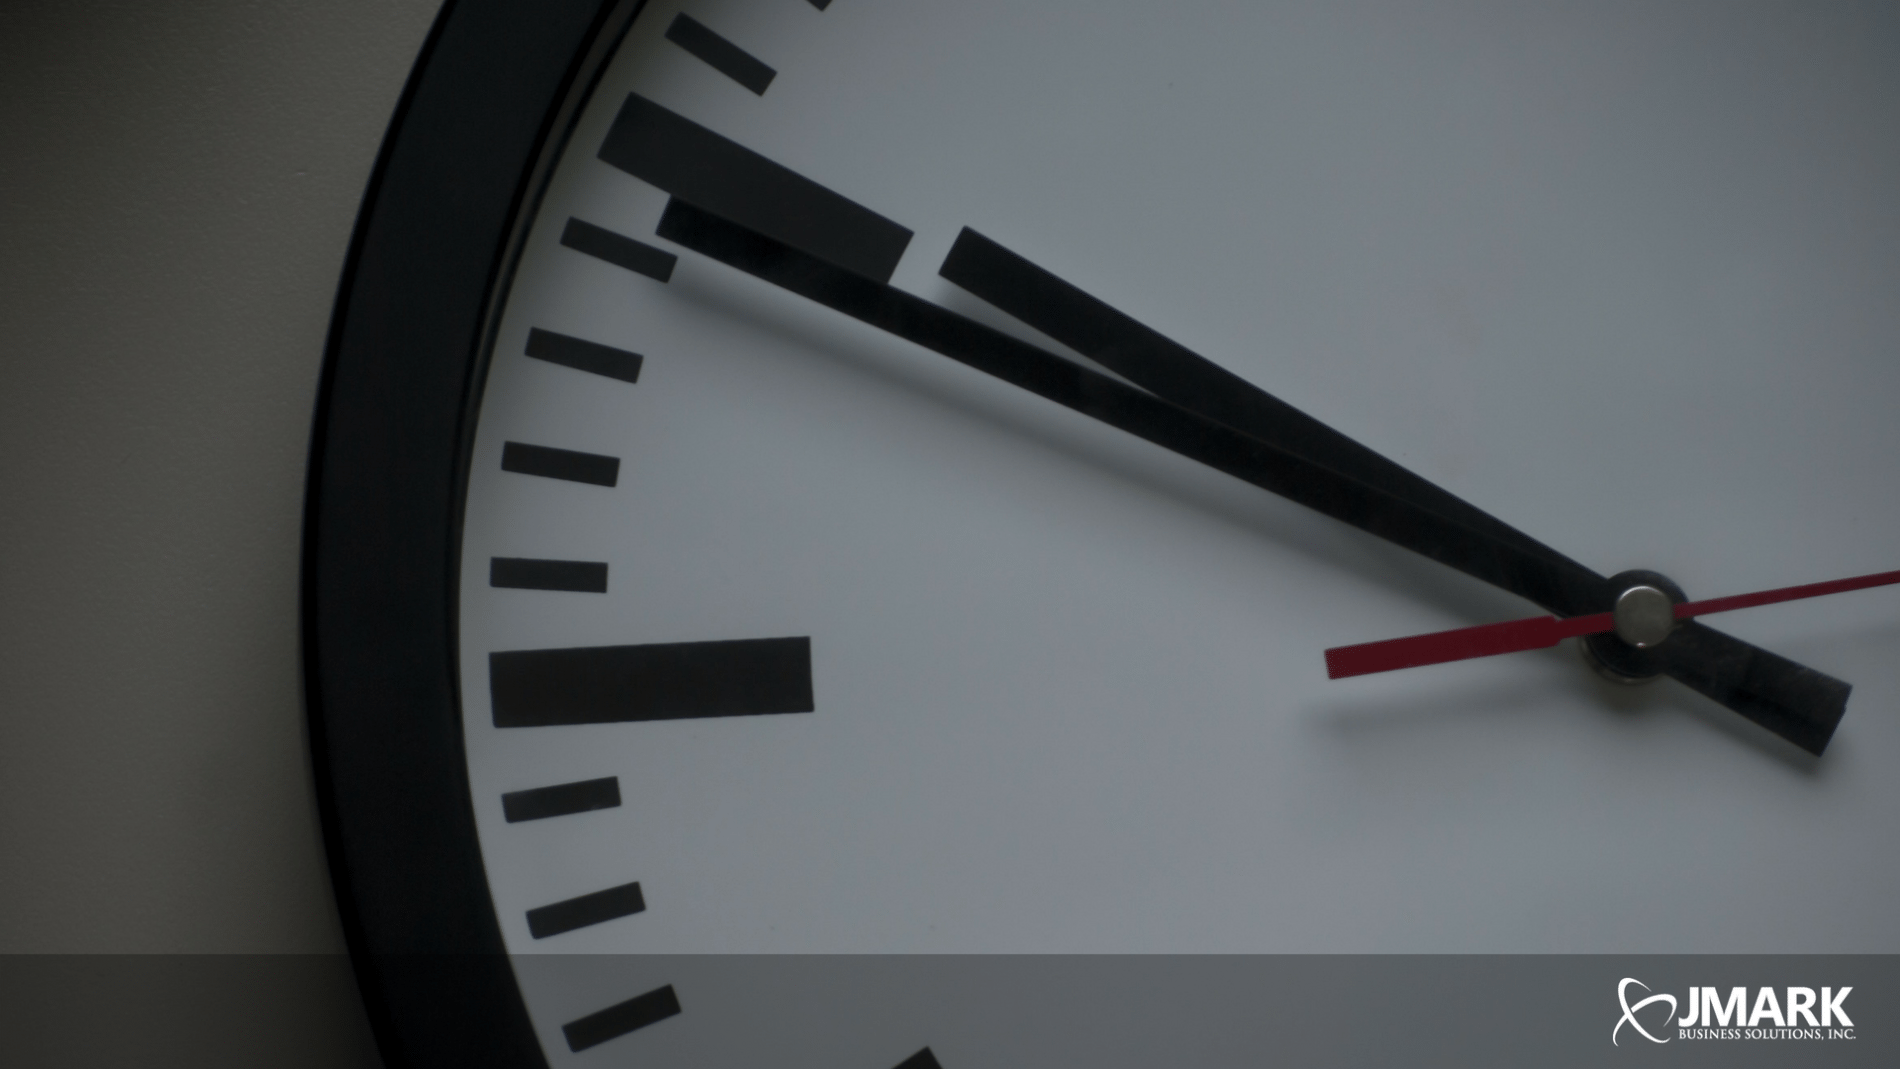 4 Signs That It's Time to Switch Managed Service Providers